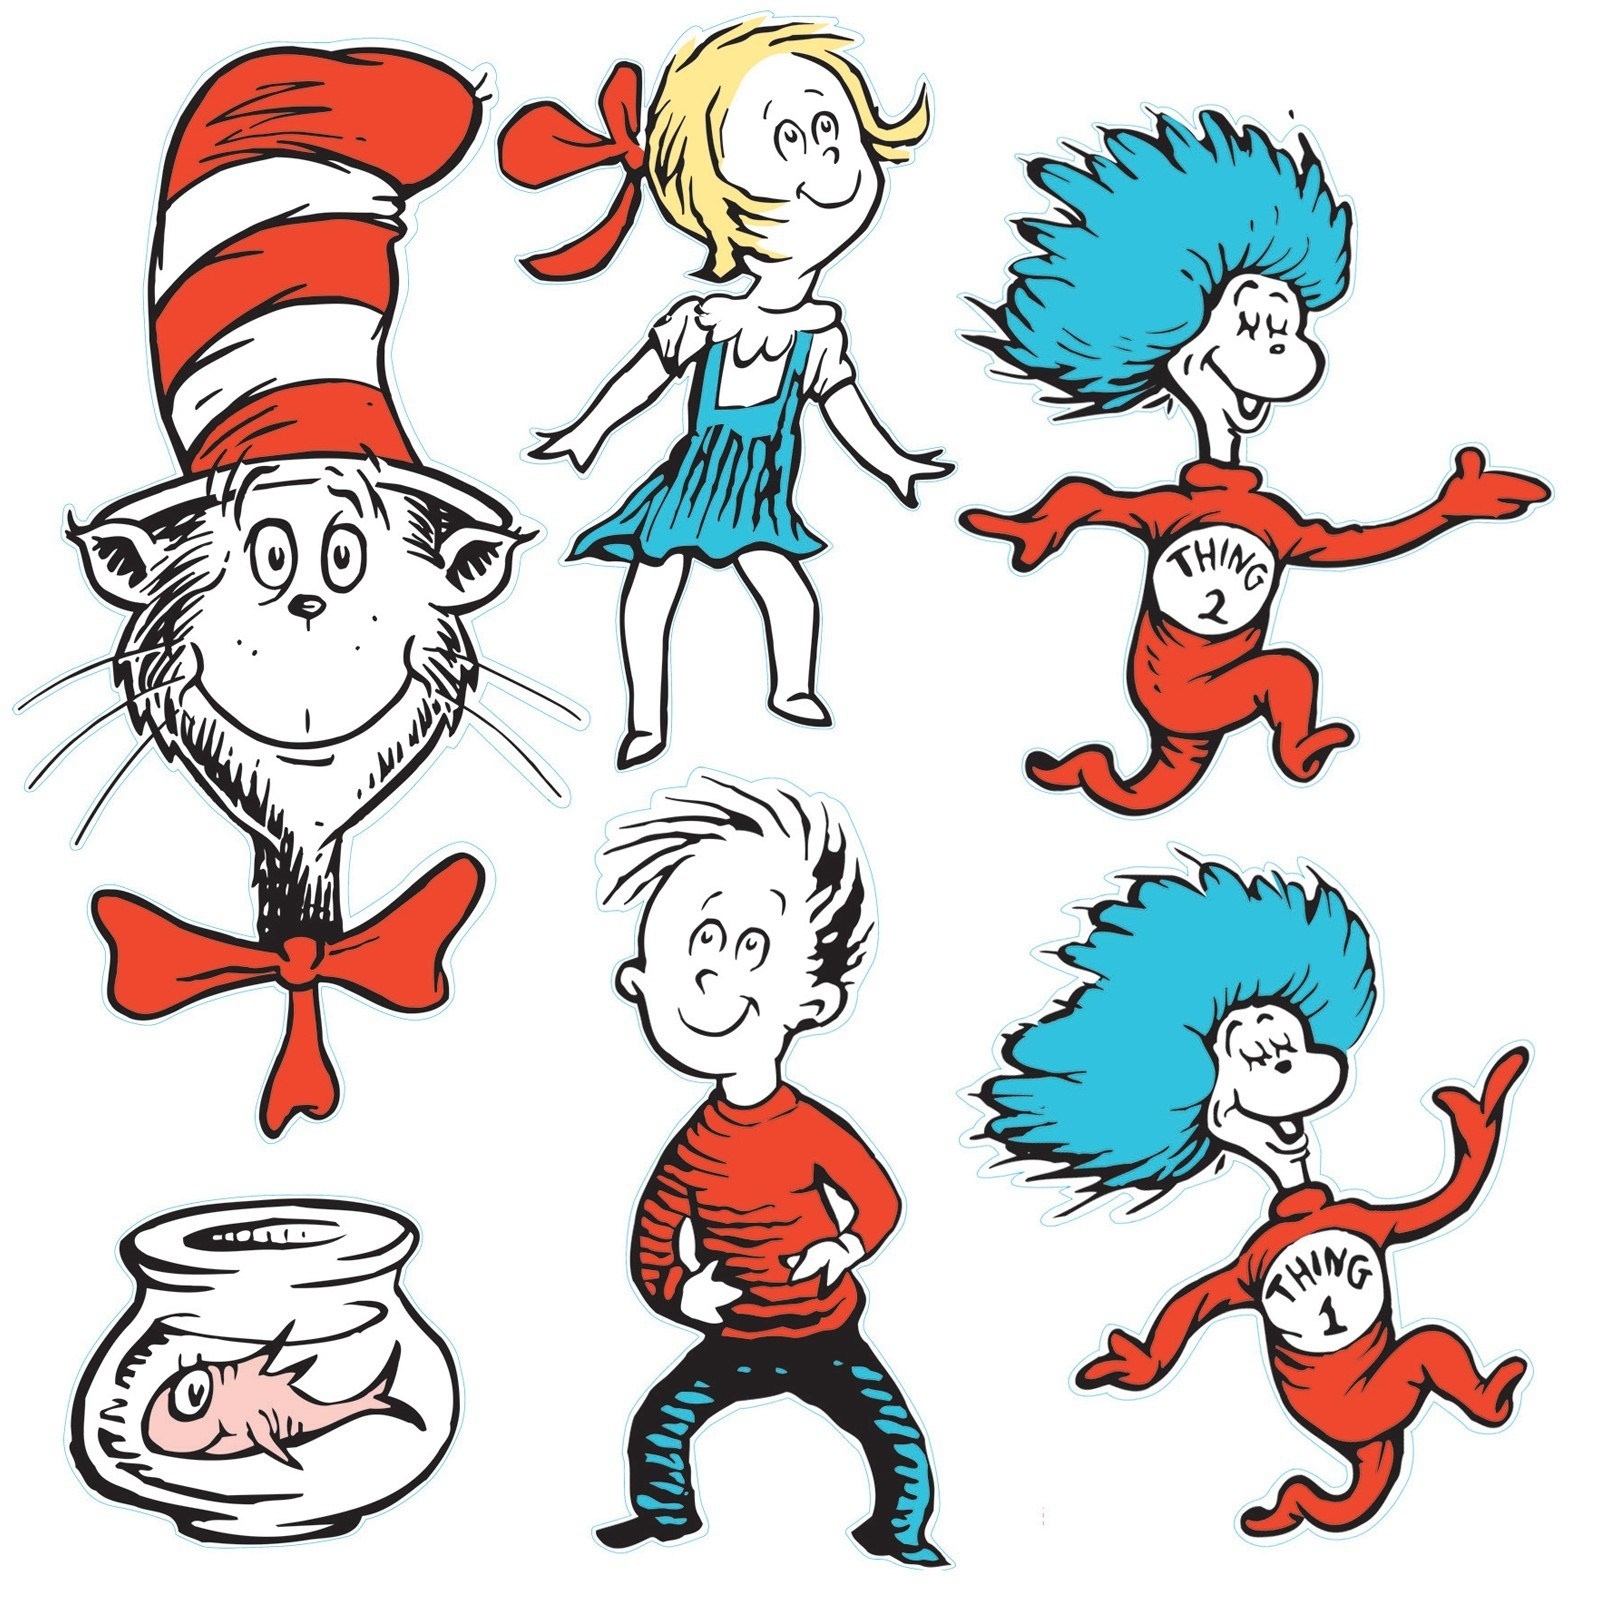 Coloring ~ Dr Seuss Characters Printables Coloring Page Free - Free Printable Pictures Of Dr Seuss Characters